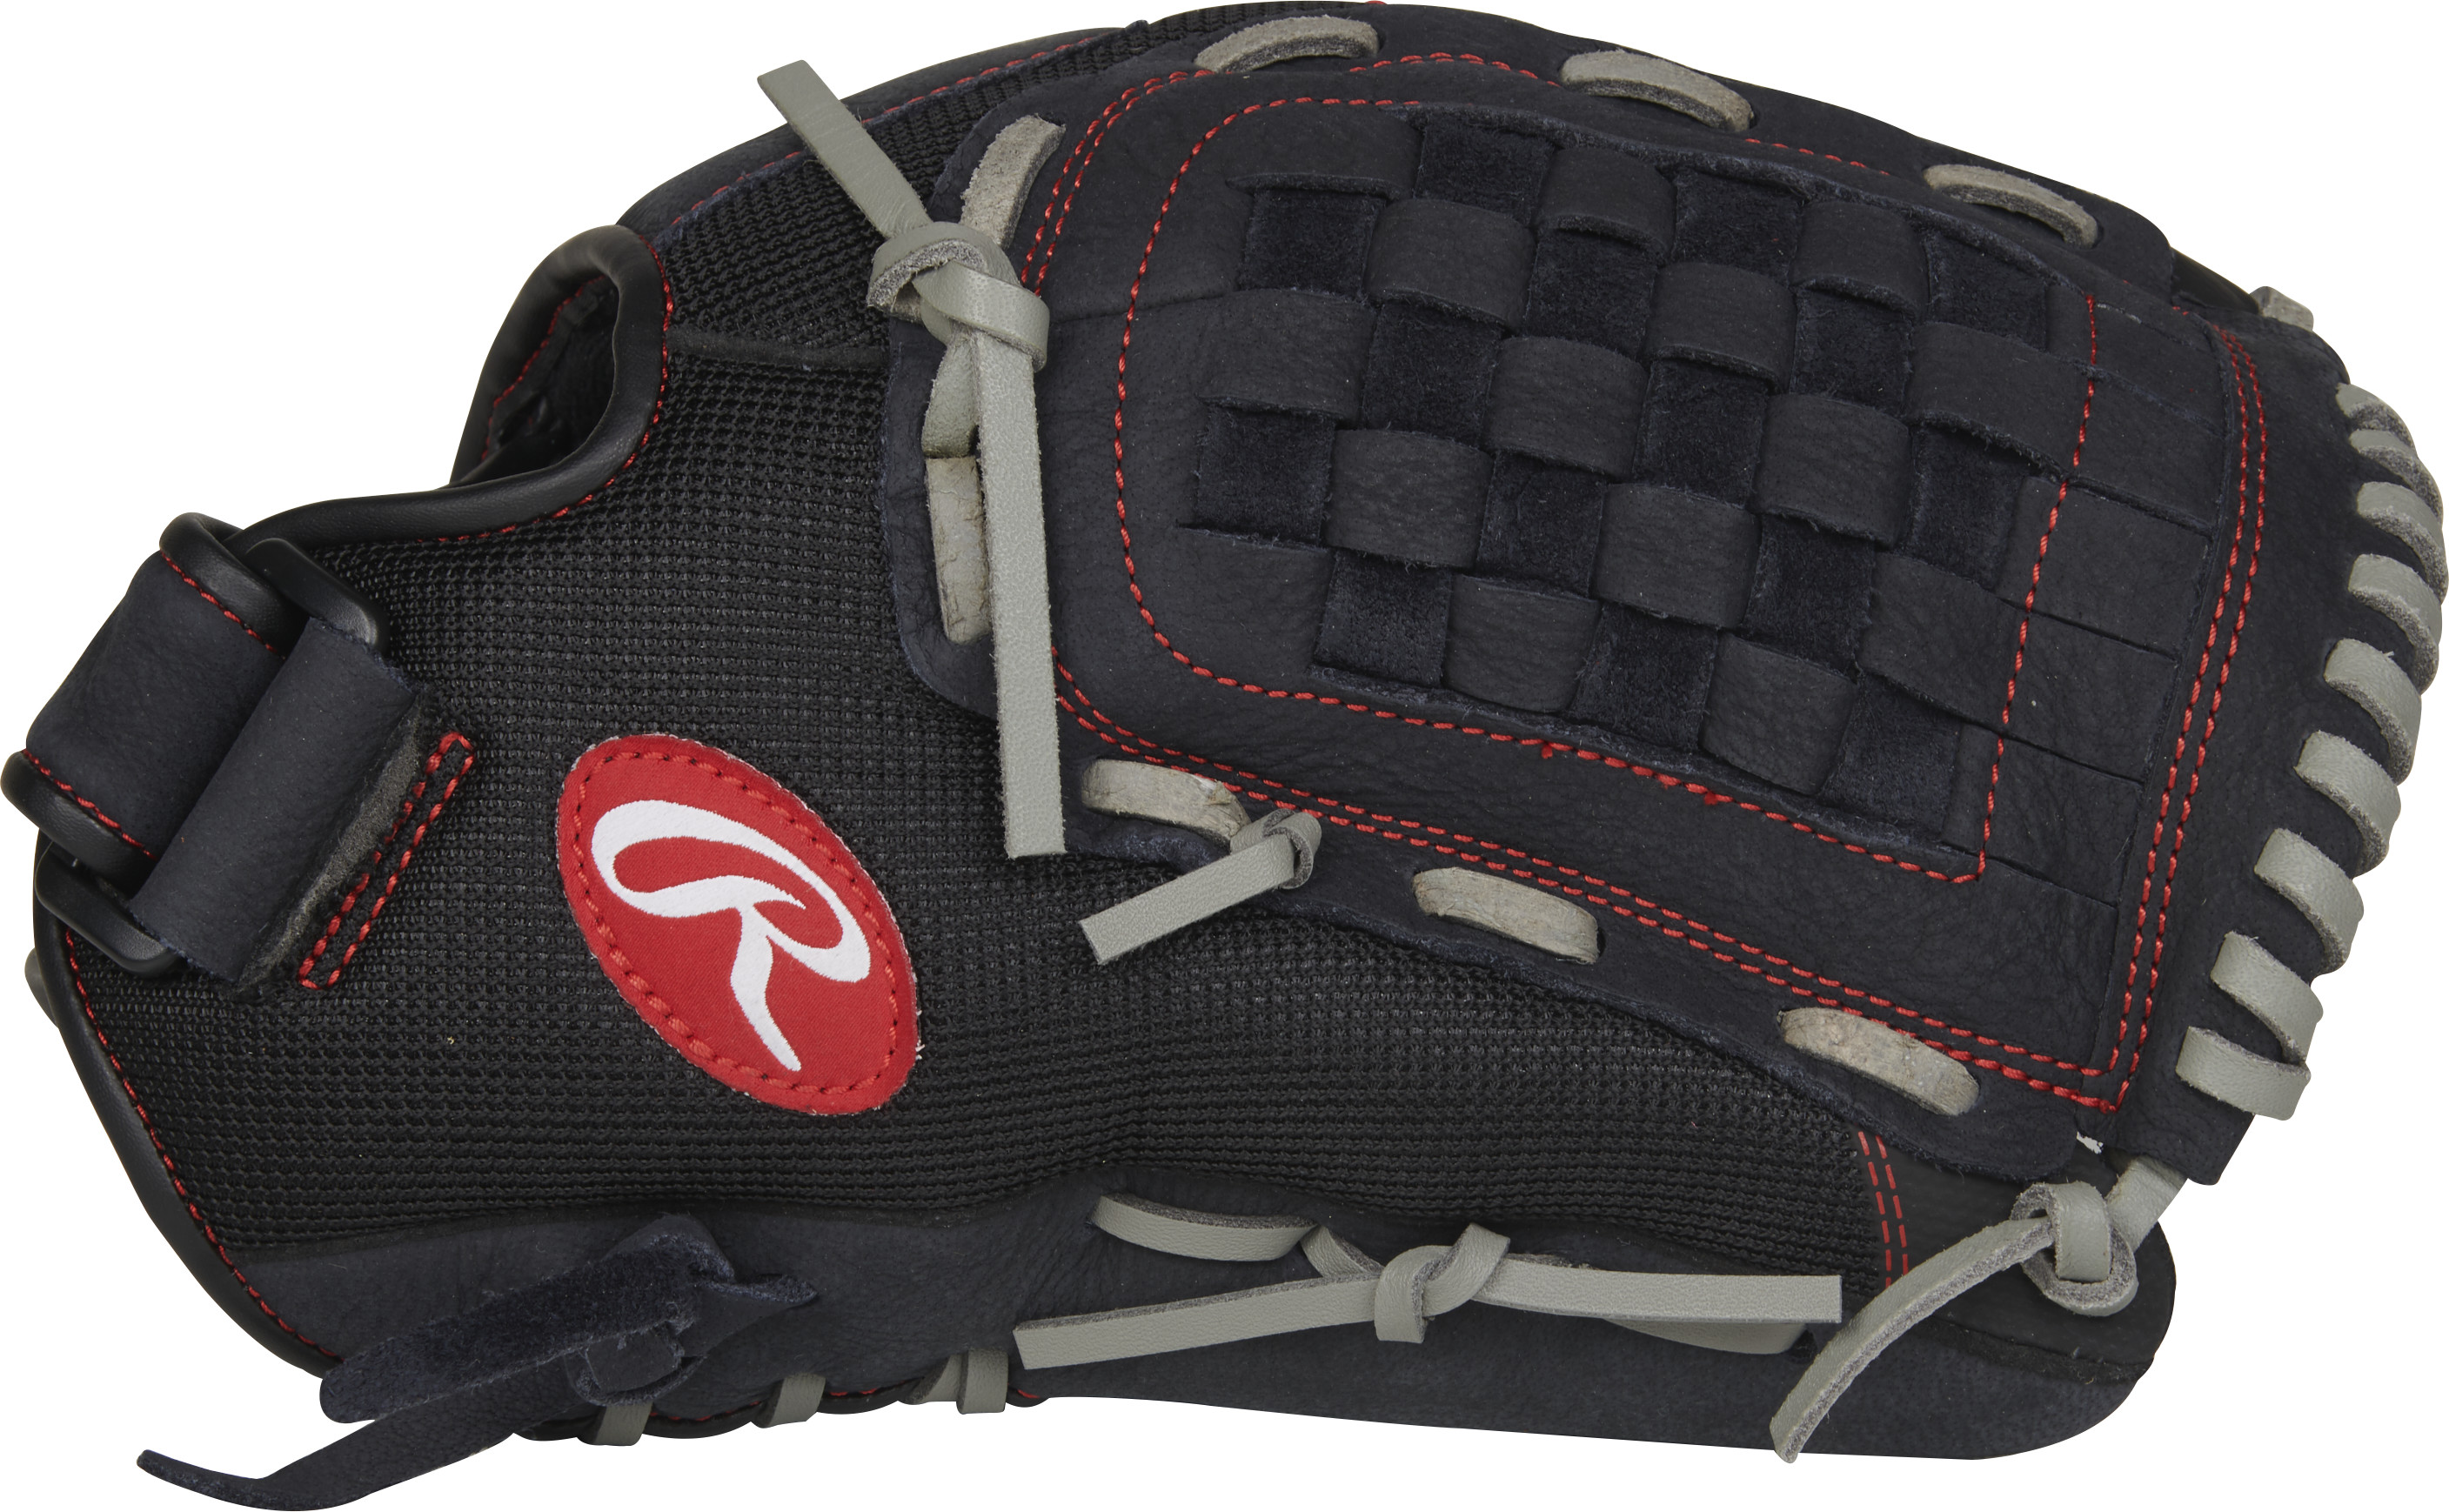 http://www.bestbatdeals.com/images/gloves/rawlings/R125BGS-3.jpg